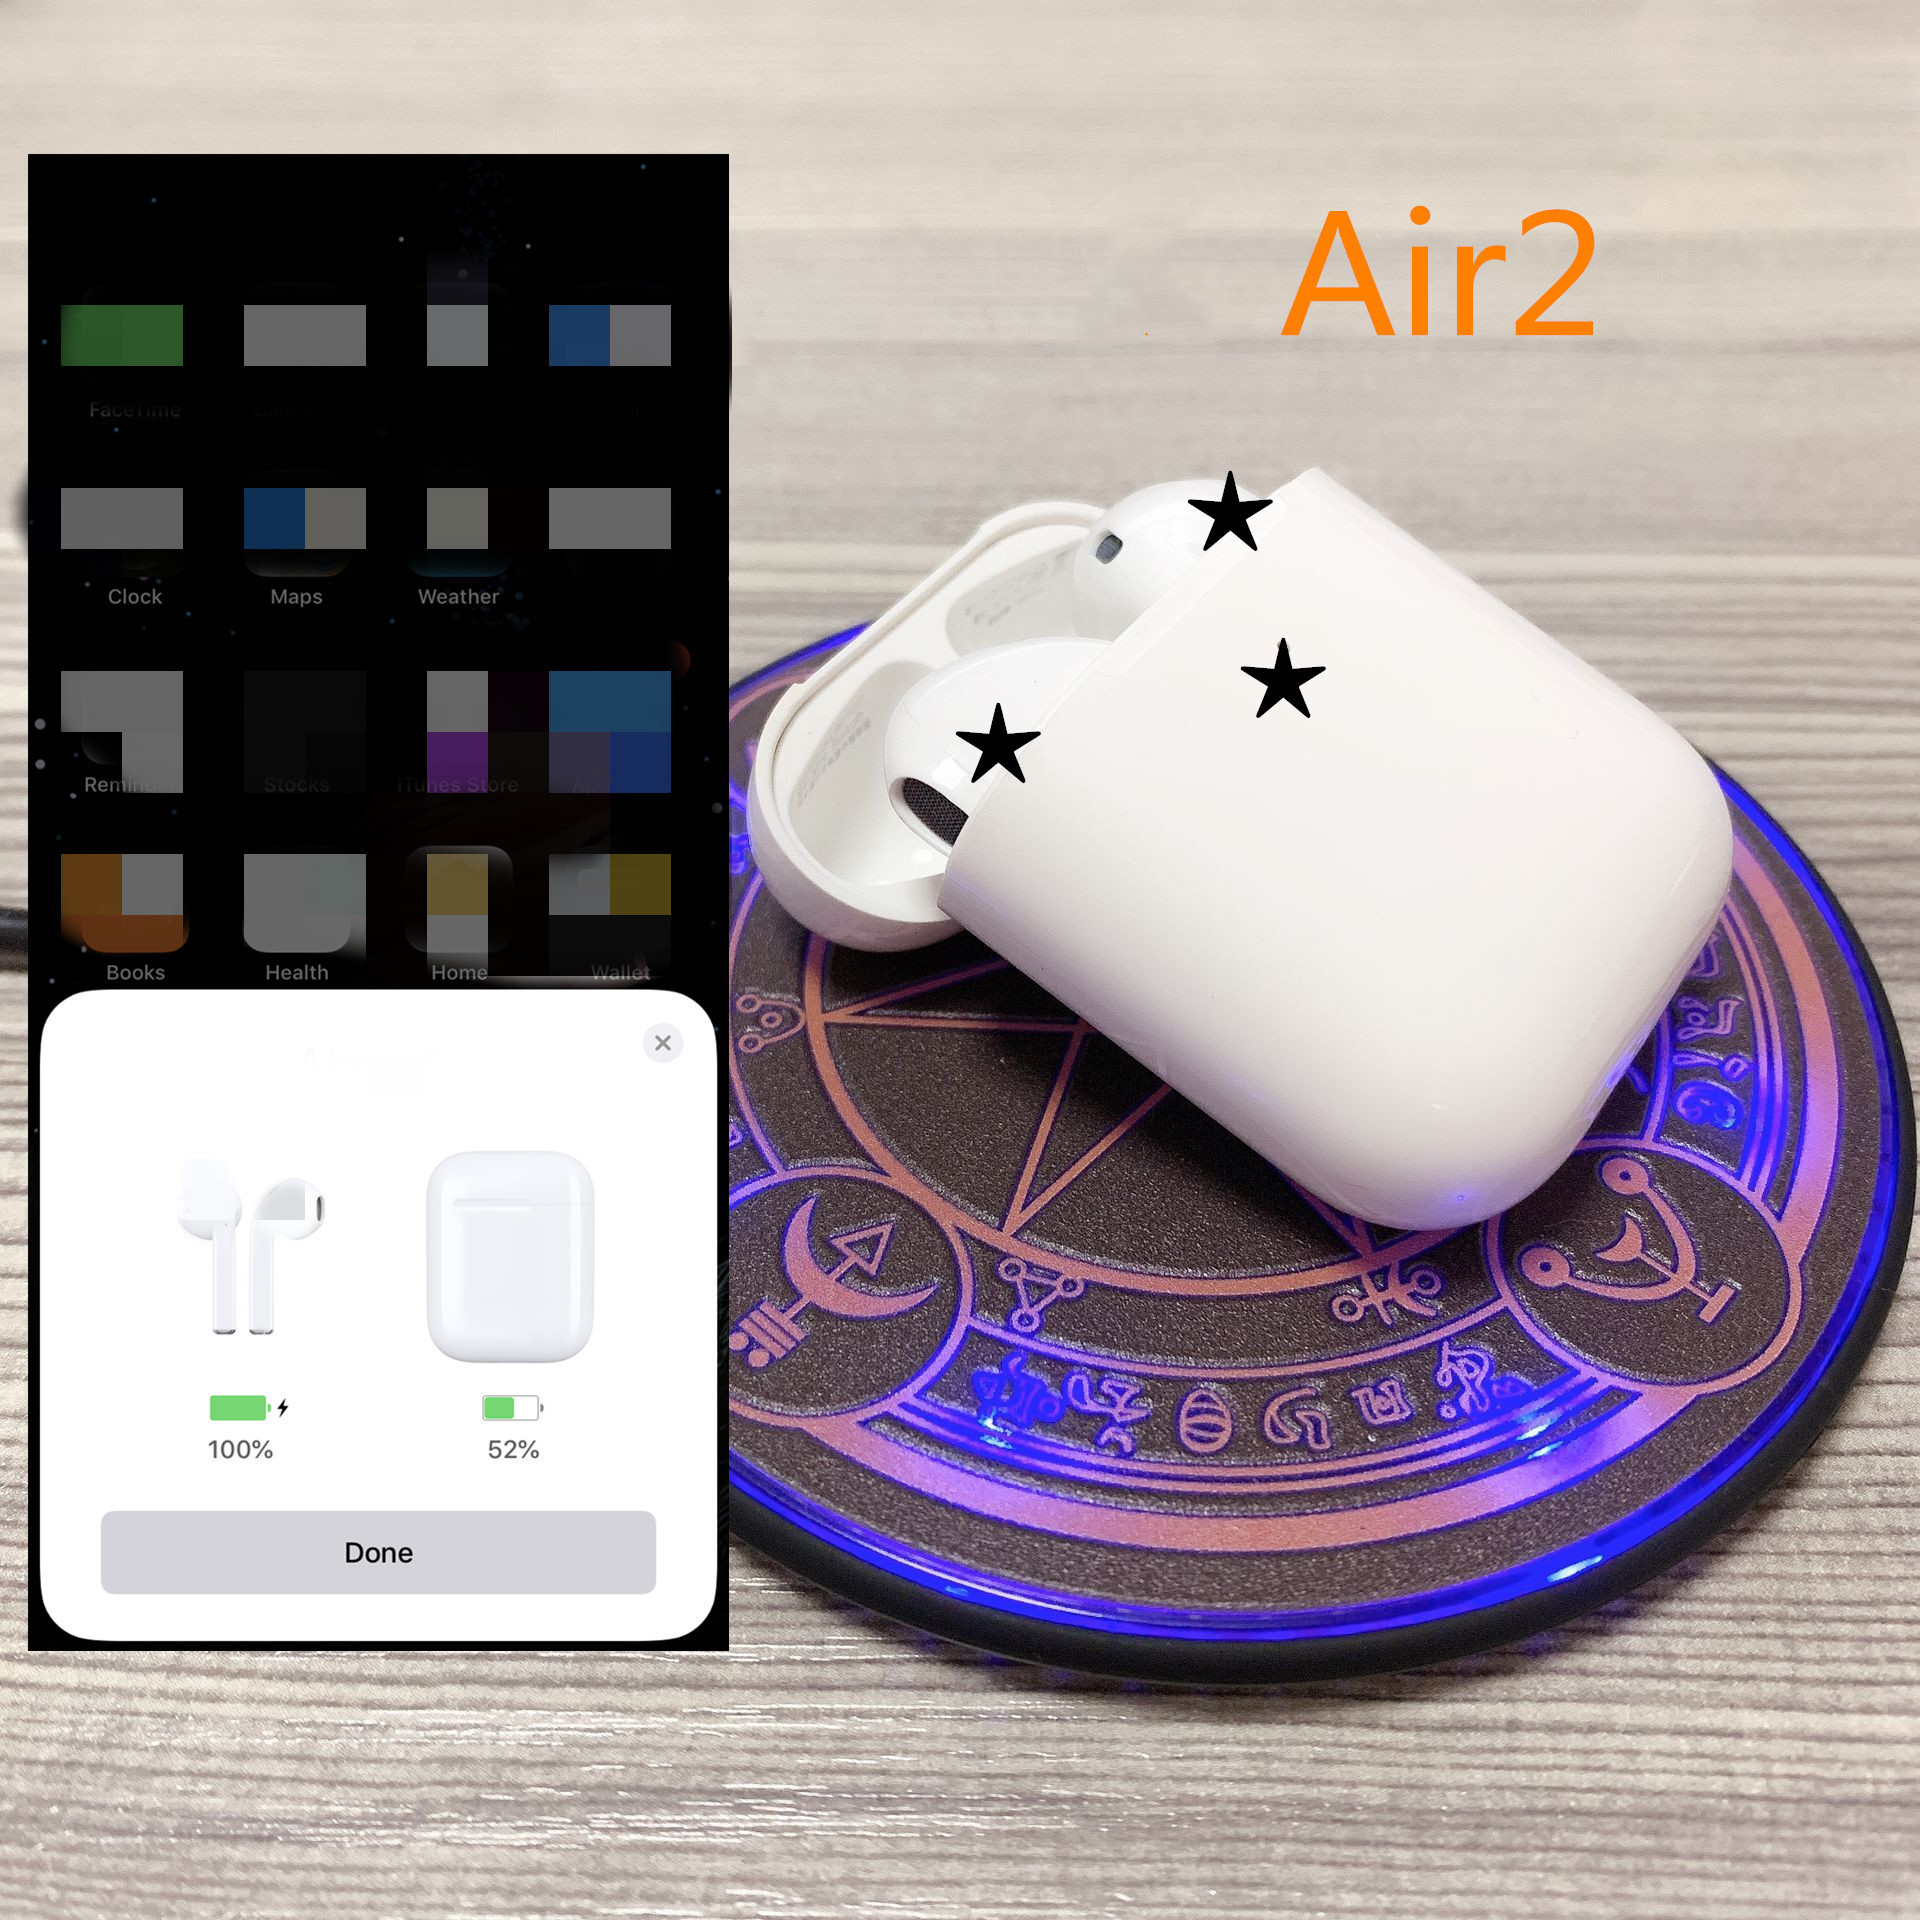 air Brand 2 with Charging Case Wireless Bluetooth Headphones Stereo Music Earphone for IOS with H1 chip high qualityair Brand 2 with Charging Case Wireless Bluetooth Headphones Stereo Music Earphone for IOS with H1 chip high quality